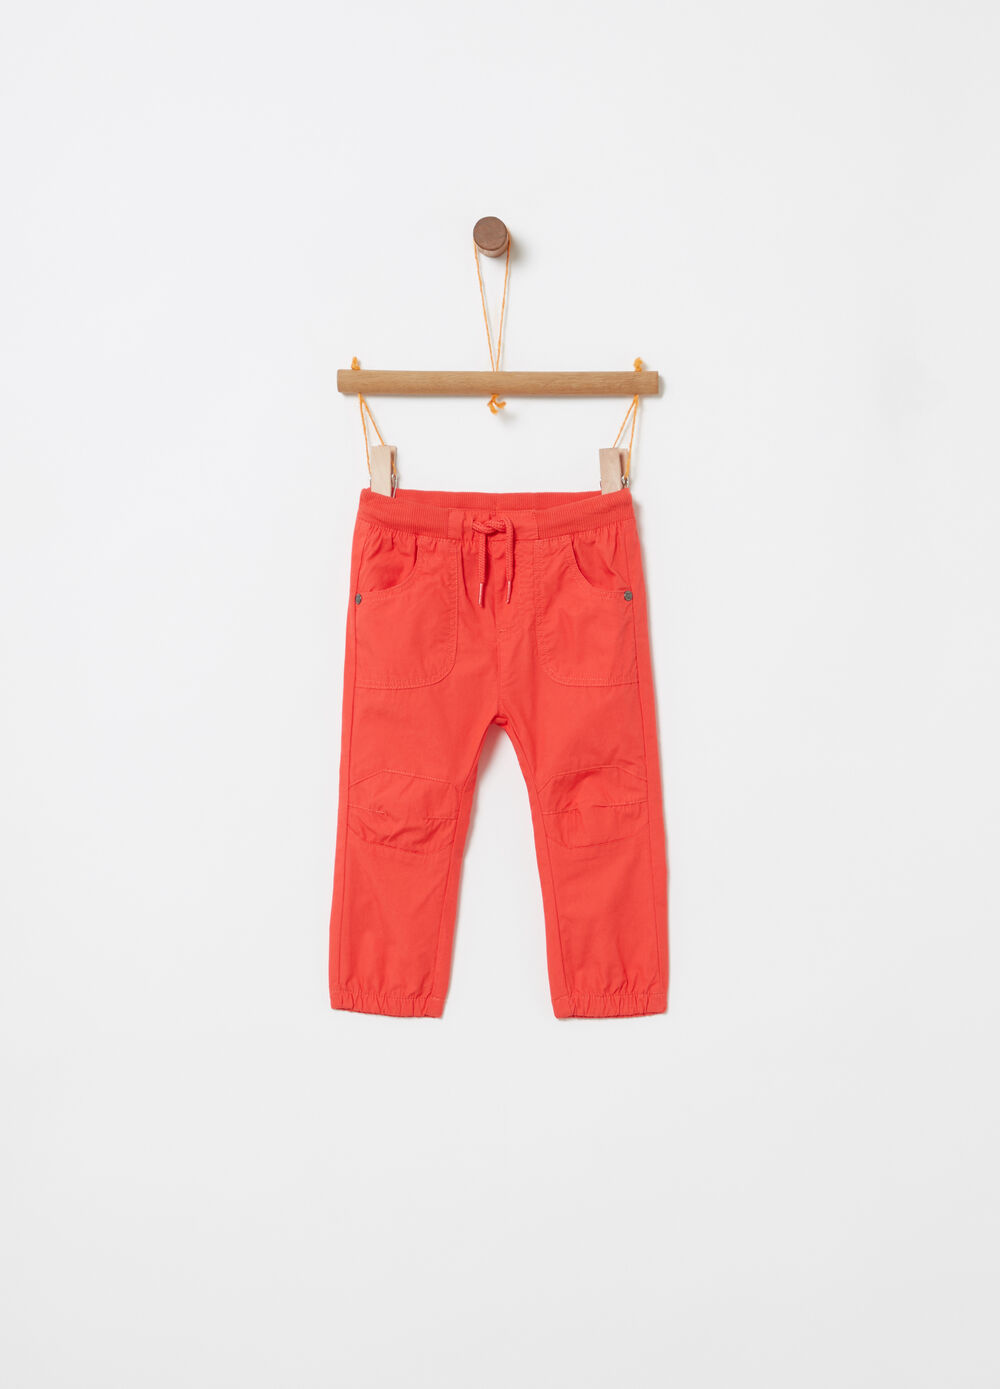 Poplin trousers with drawstring and pockets